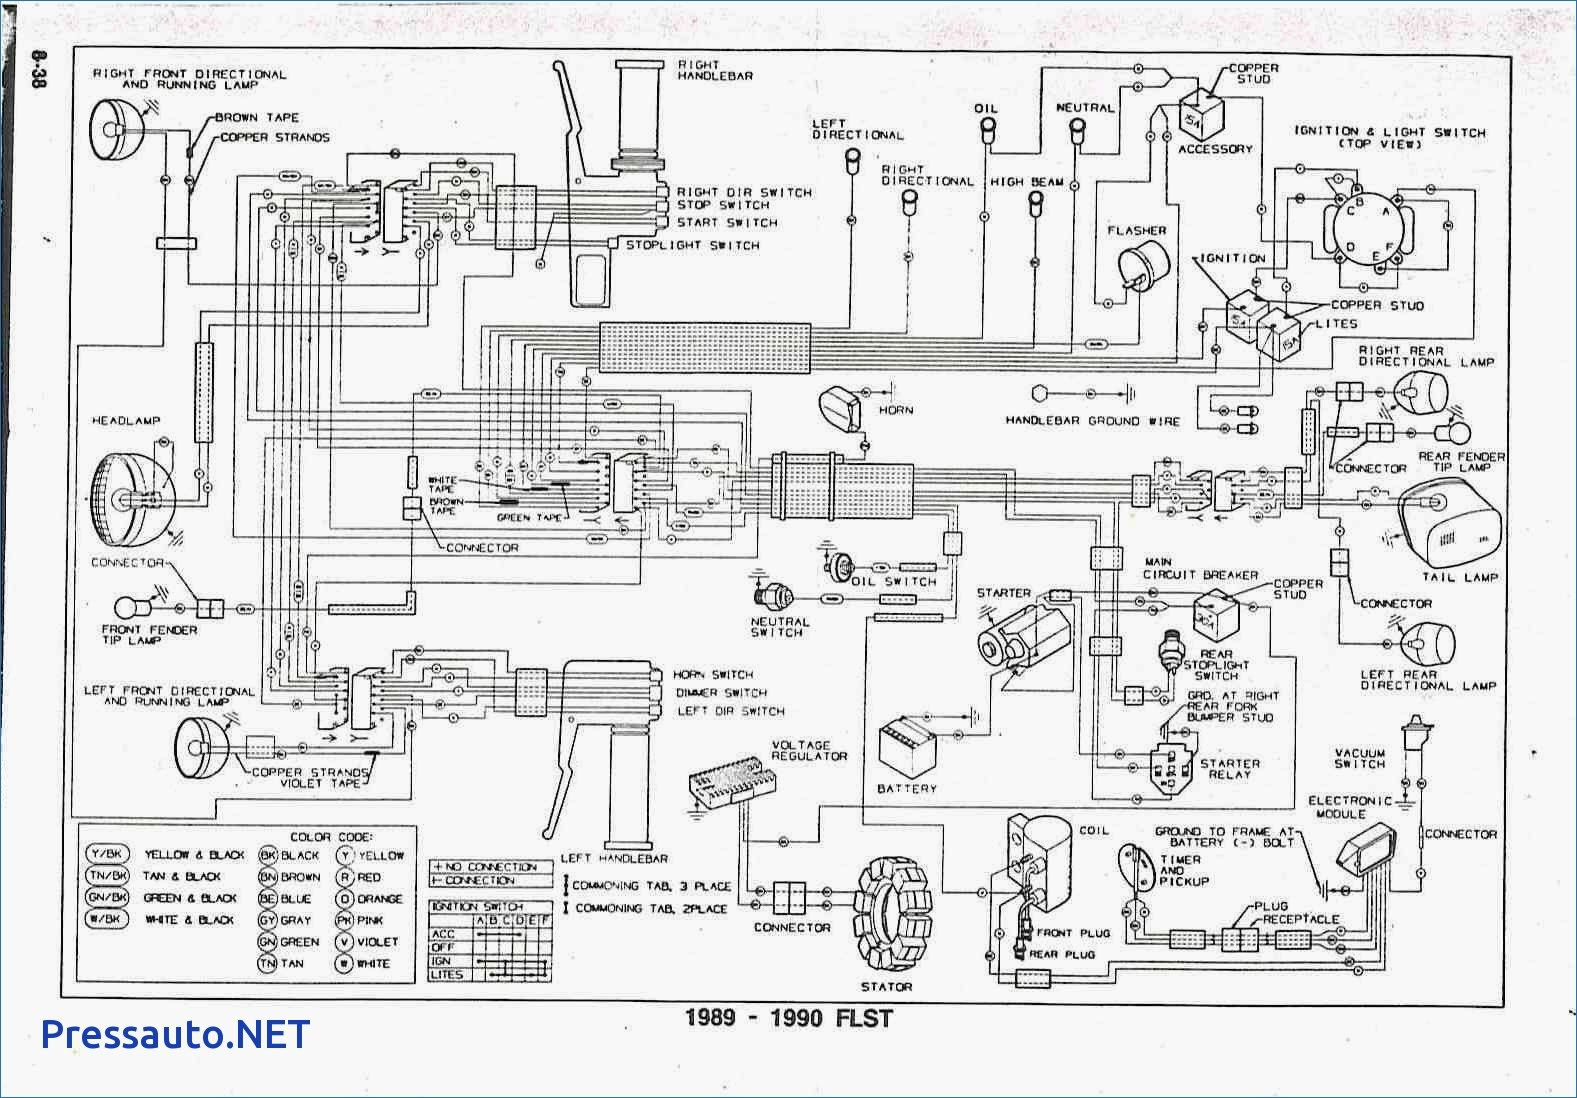 Wiring Diagram Harley Davidson Download Free Printable Of ... on